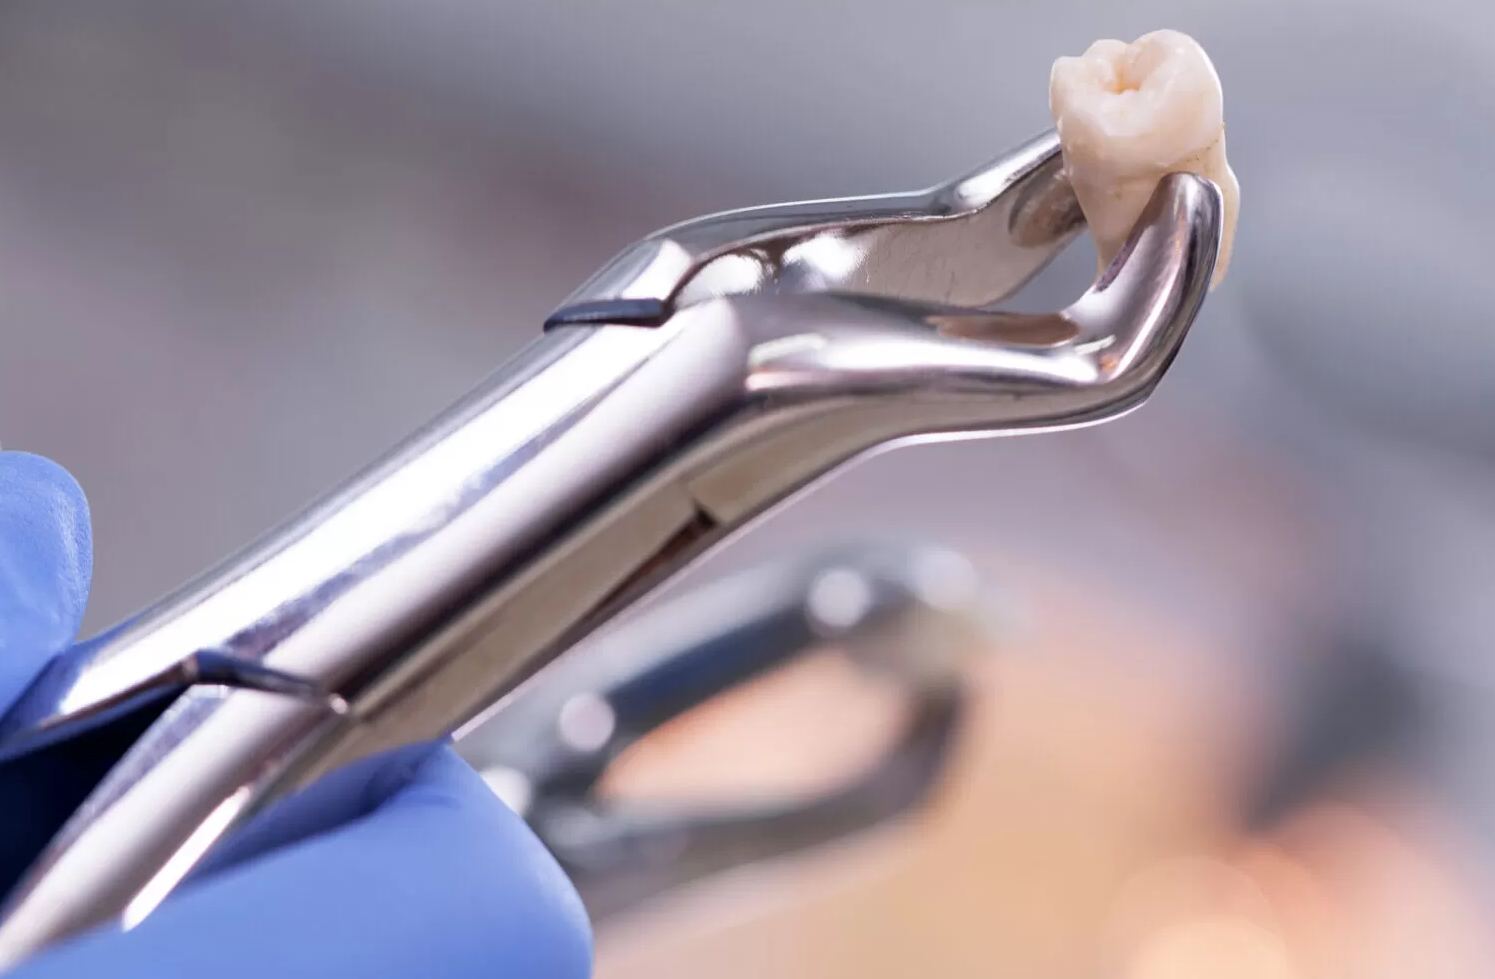 Simple extraction for wisdom tooth